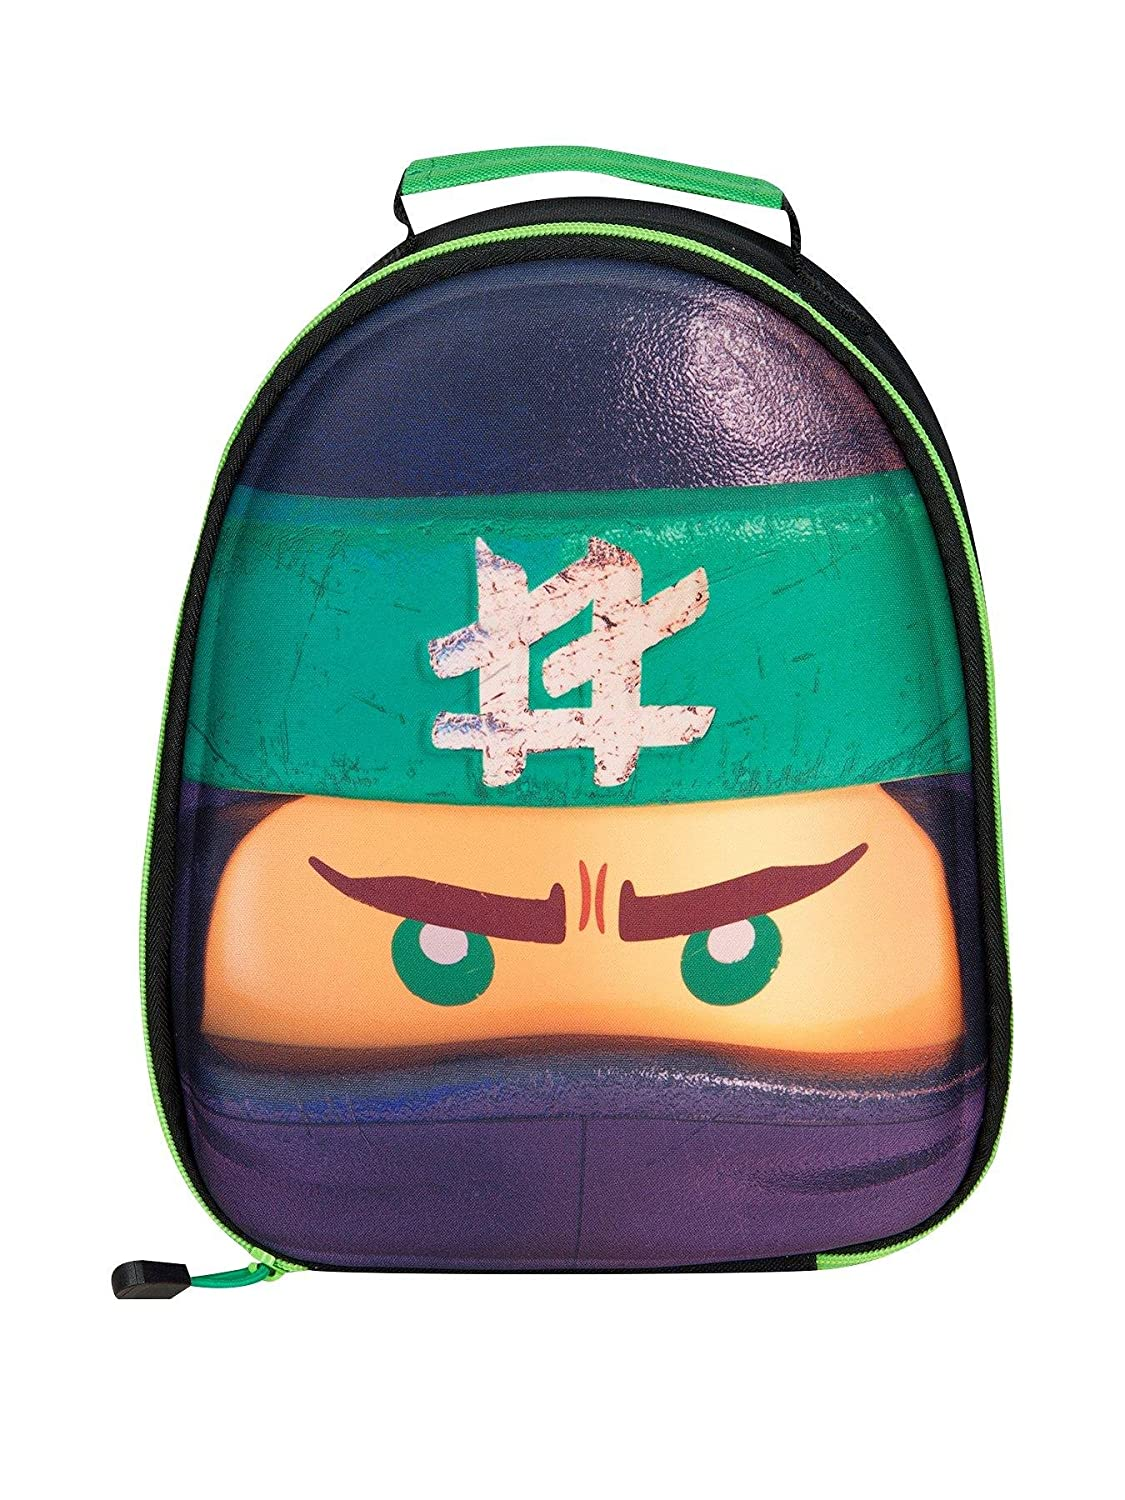 Lego Vline Ninjago Lloyd School Backpack Green... 17 liters 38.5 x 25 x 18 cm